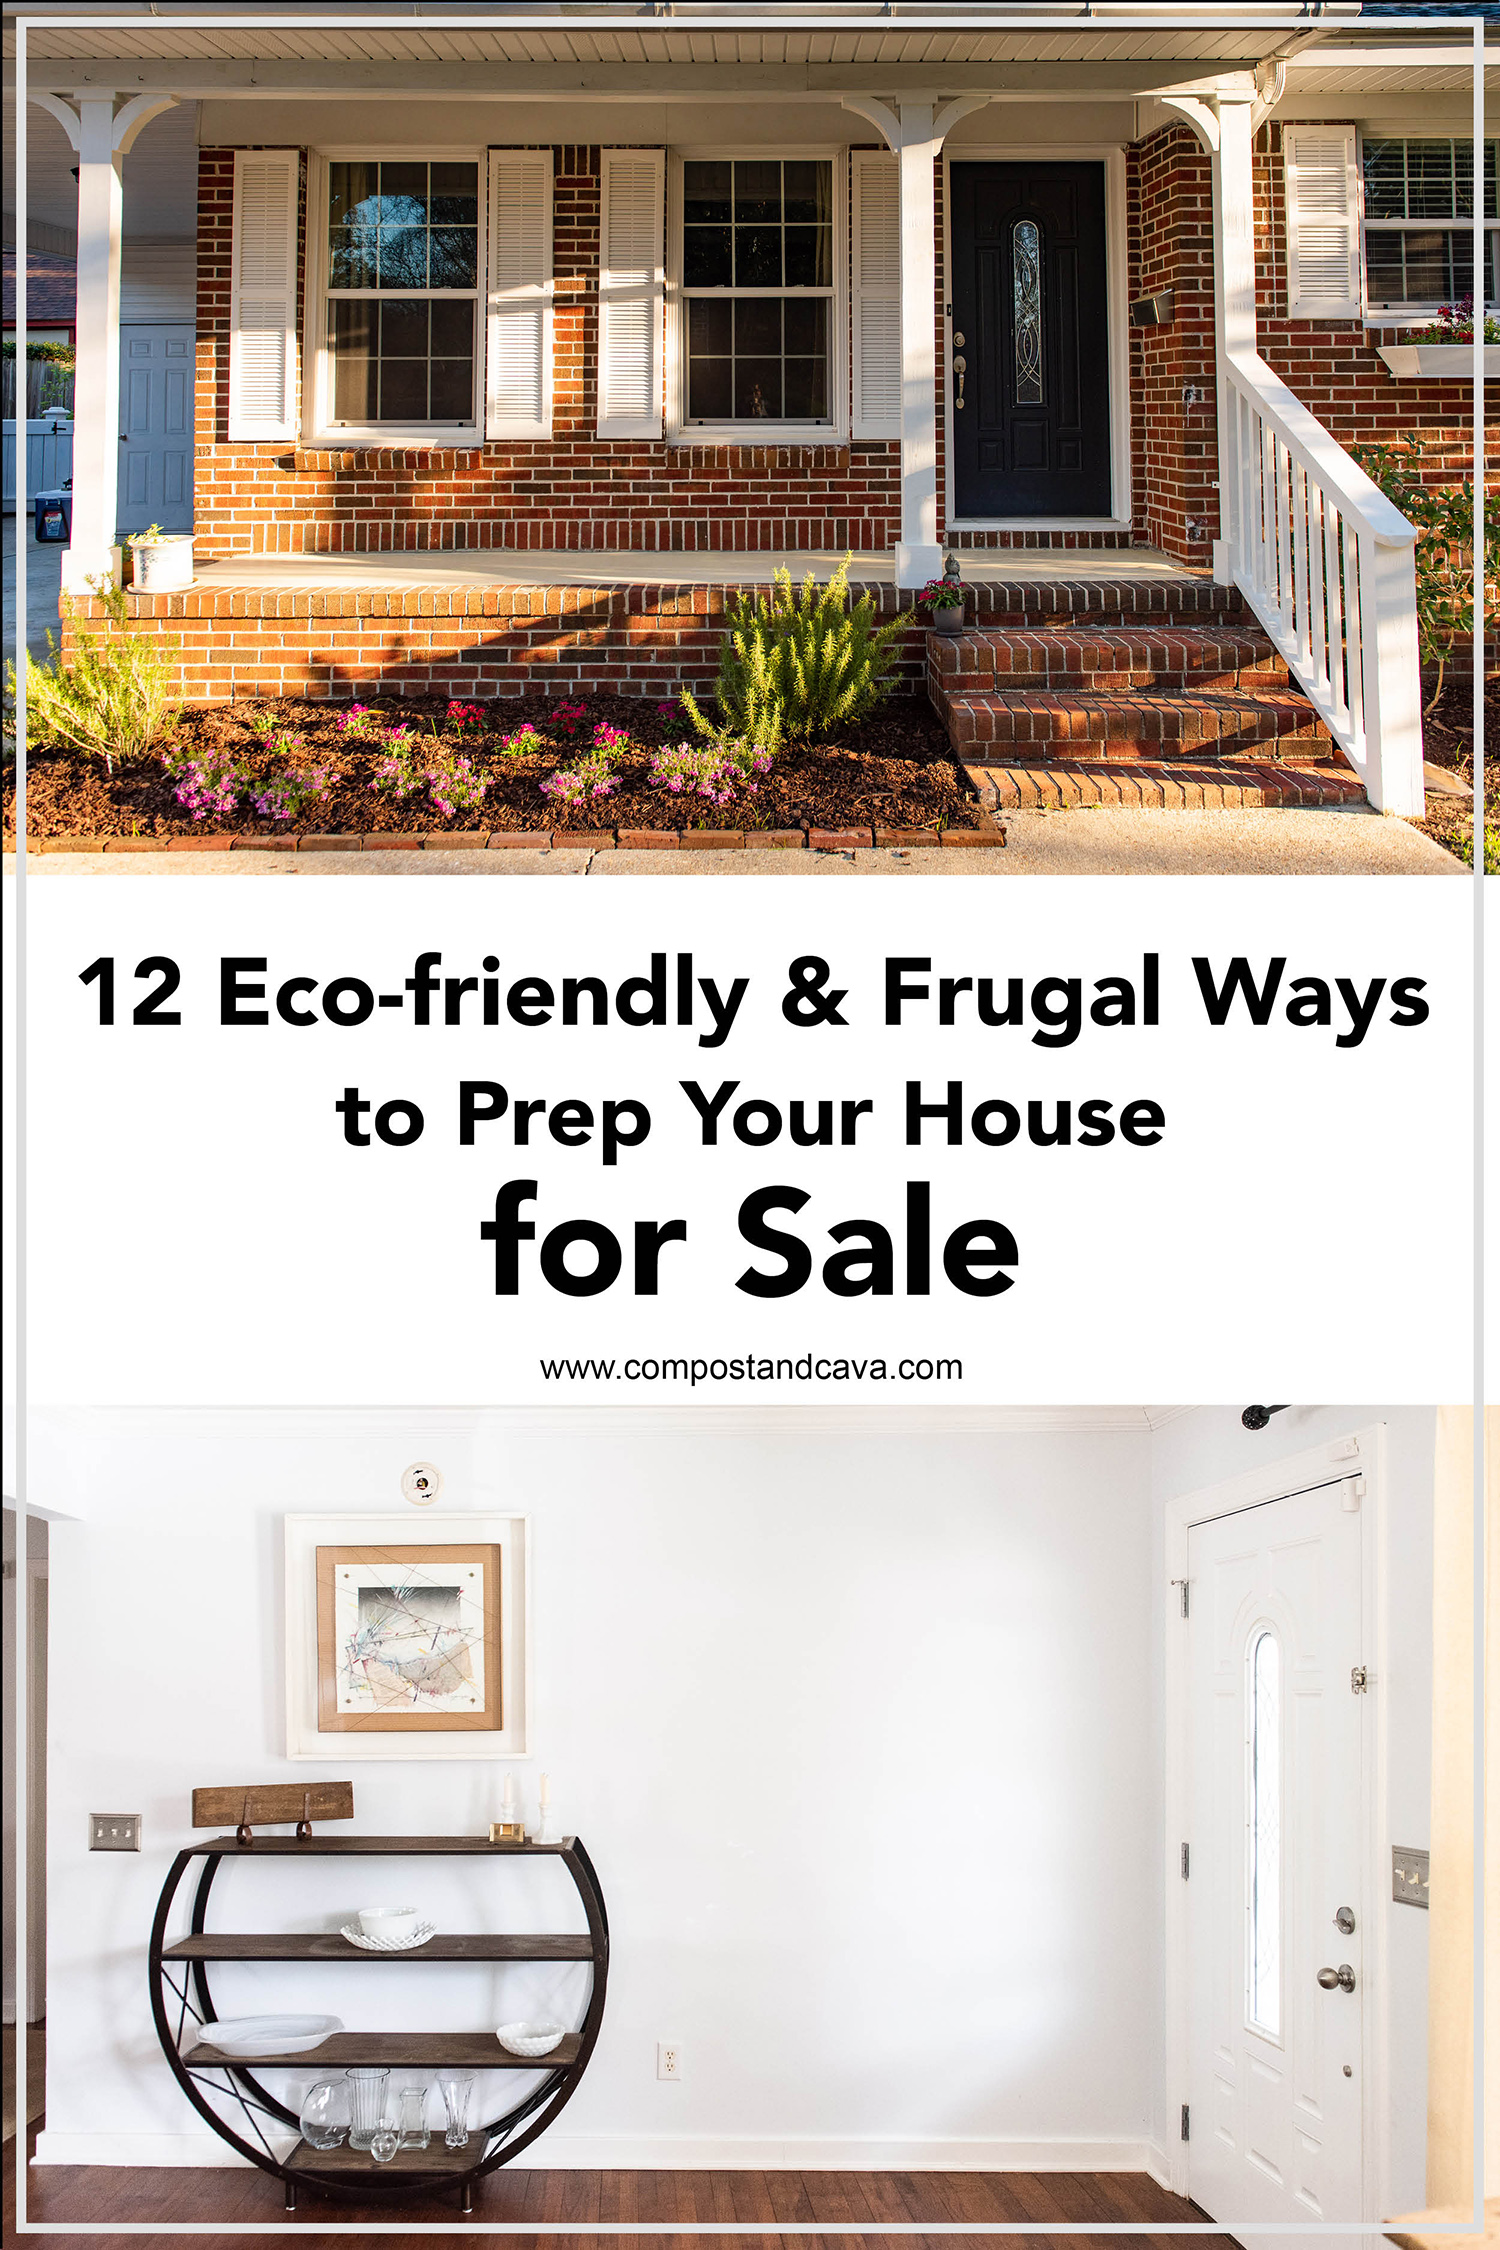 12 Eco-friendly and Frugal Ways to Prep Your House for Sale